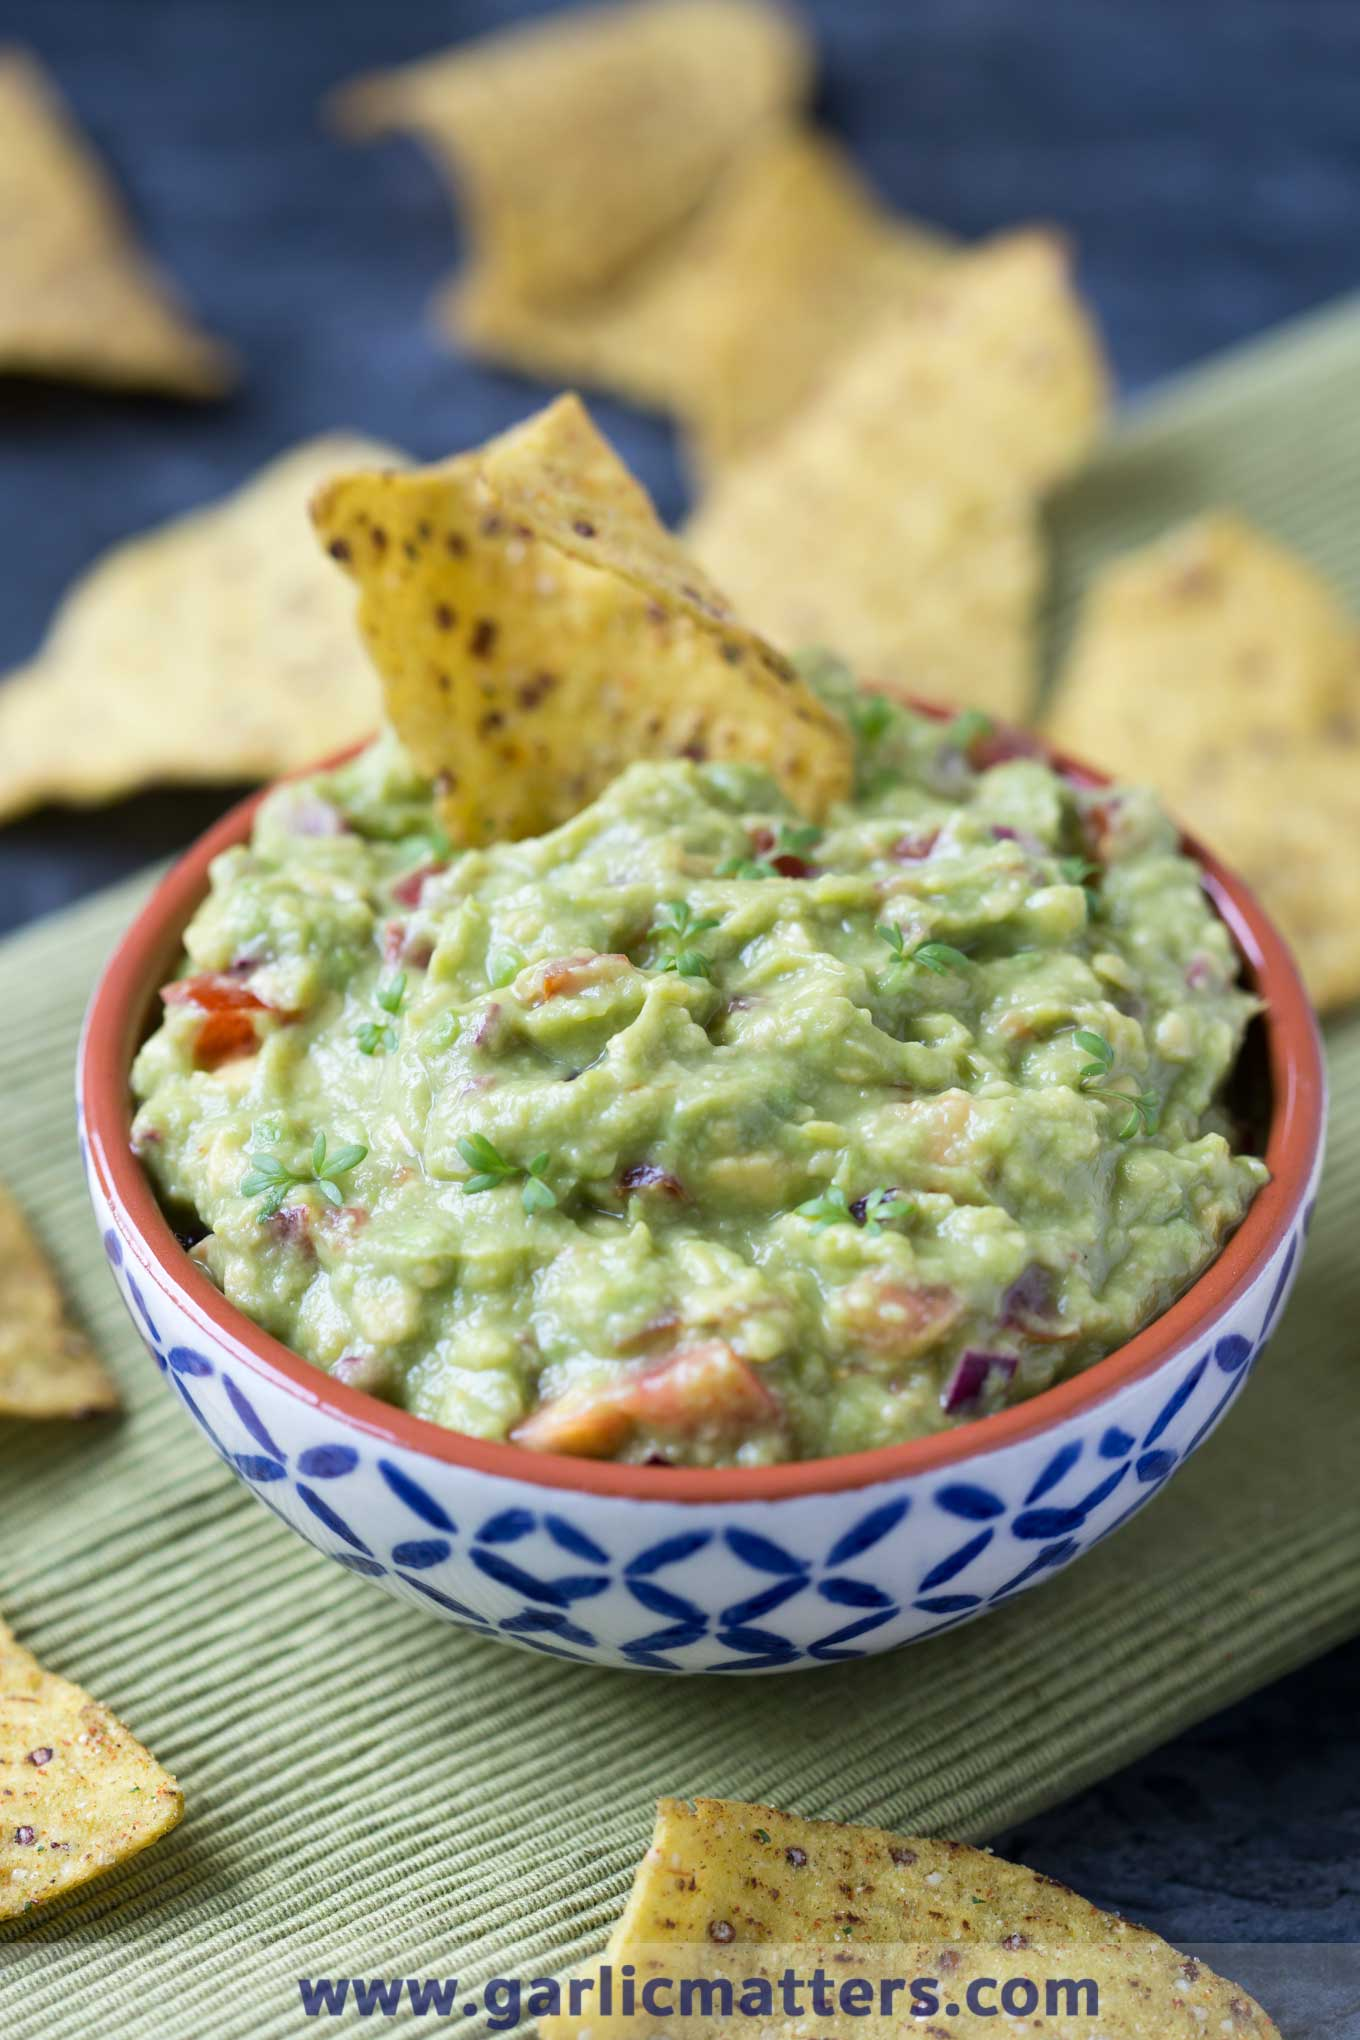 Vegan, fresh and absolutely delicious guacamole is a real party starter or a fabulous healthy snack you might cozy up with alone. Yumazing!